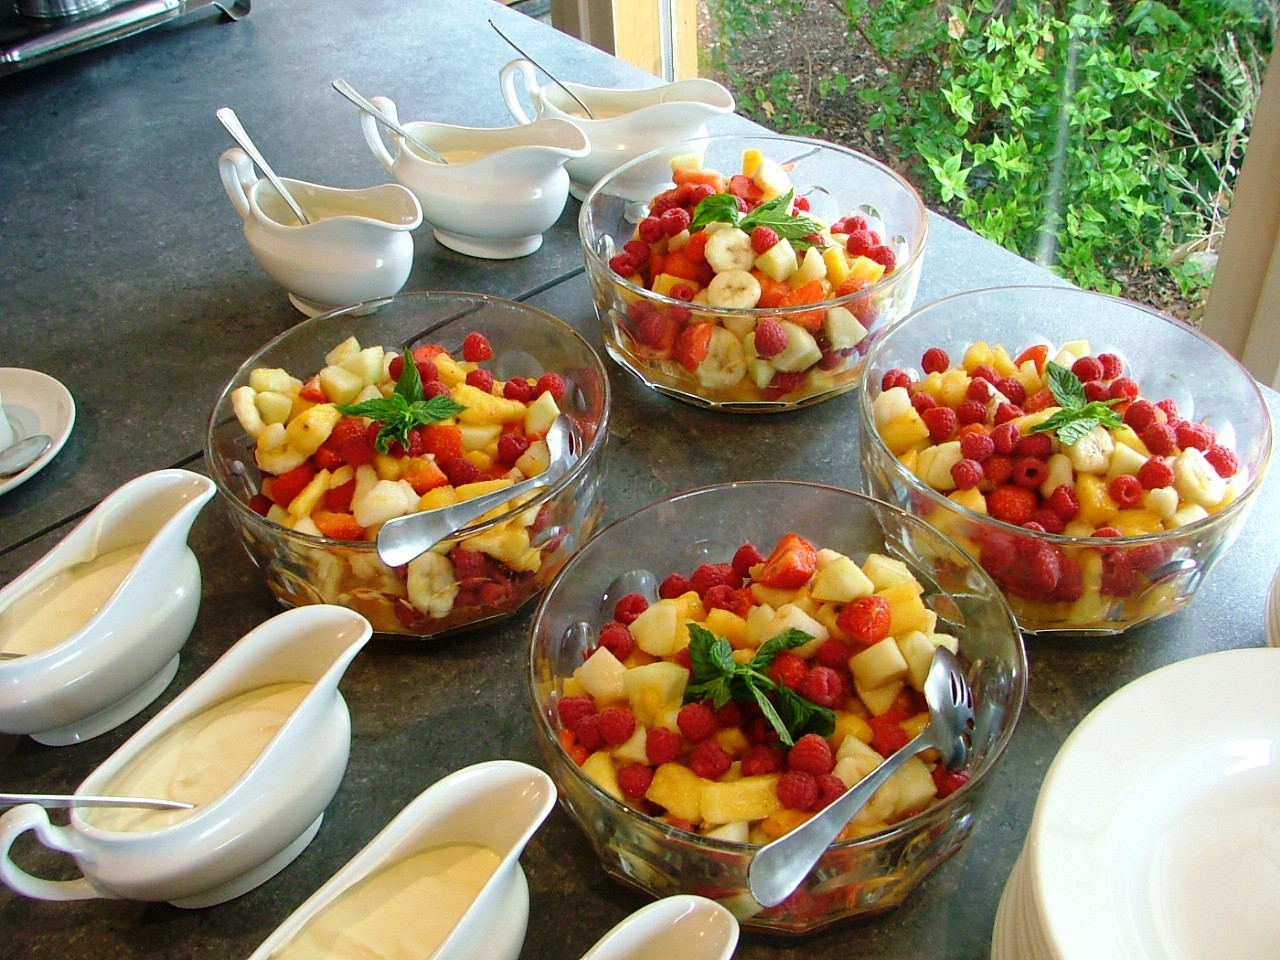 Easy Healthy Breakfast Meals  Quick Healthy Meals from a Dietitian